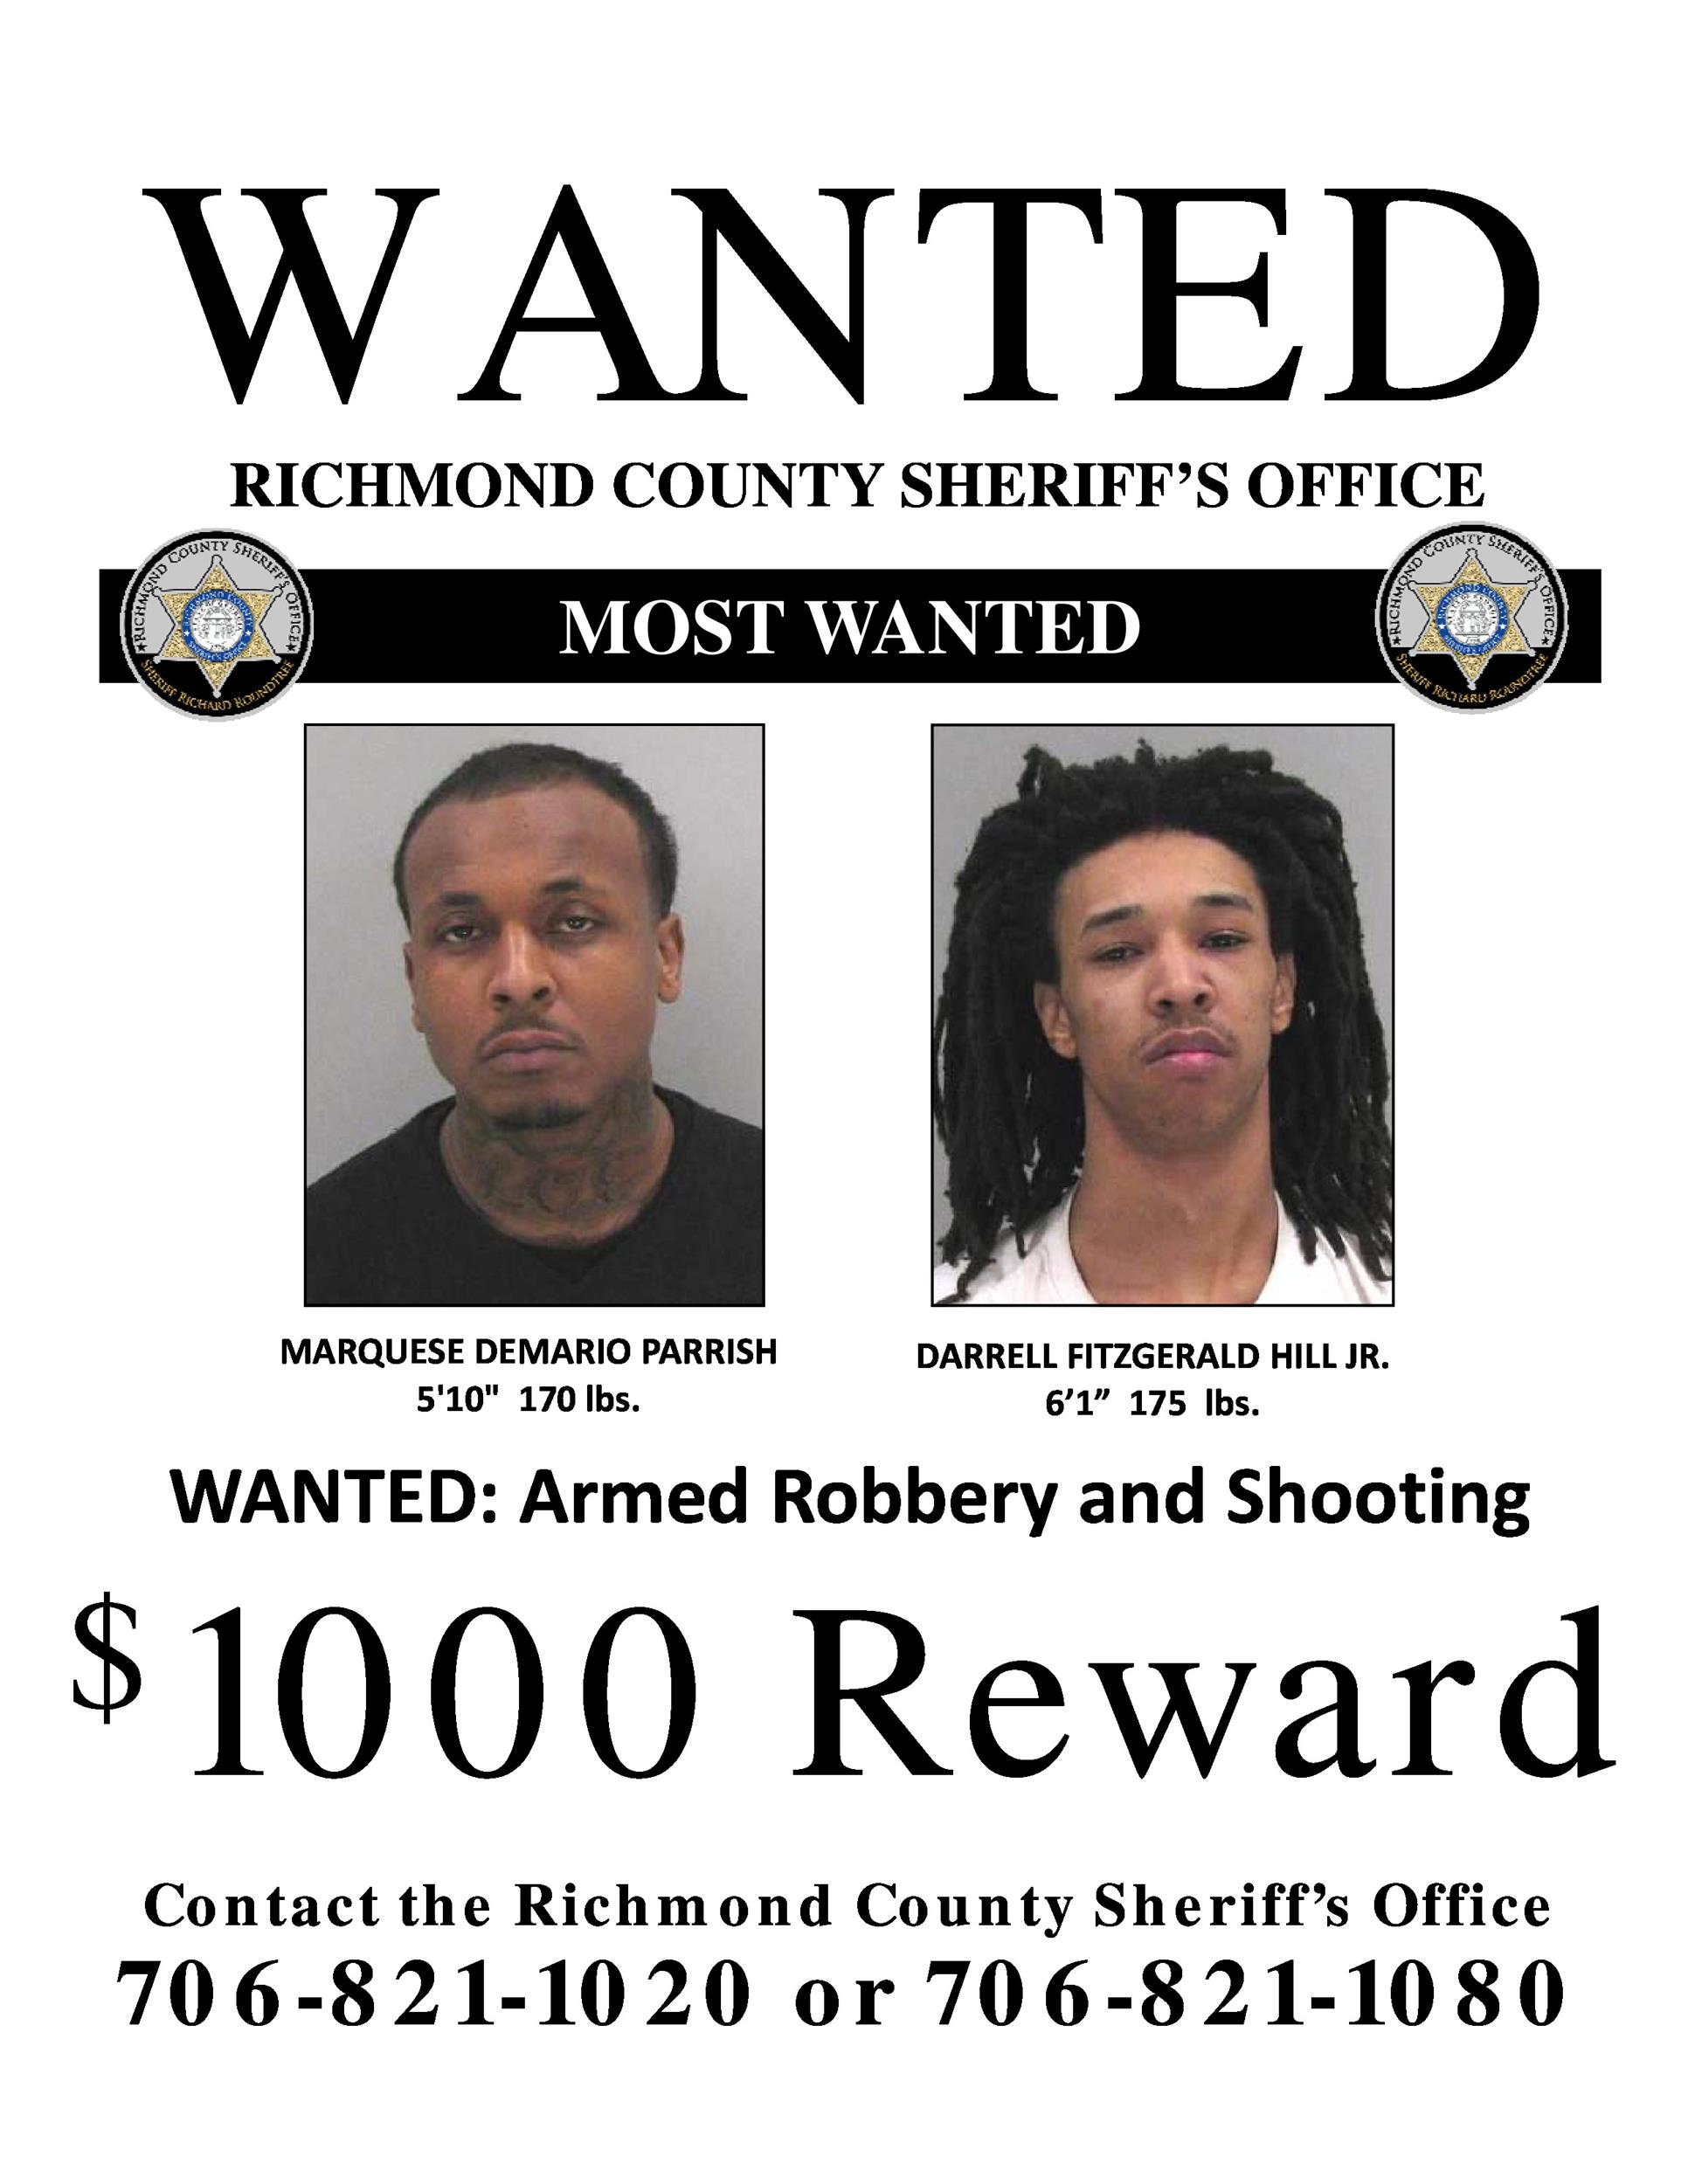 FBI wanted poster template 03